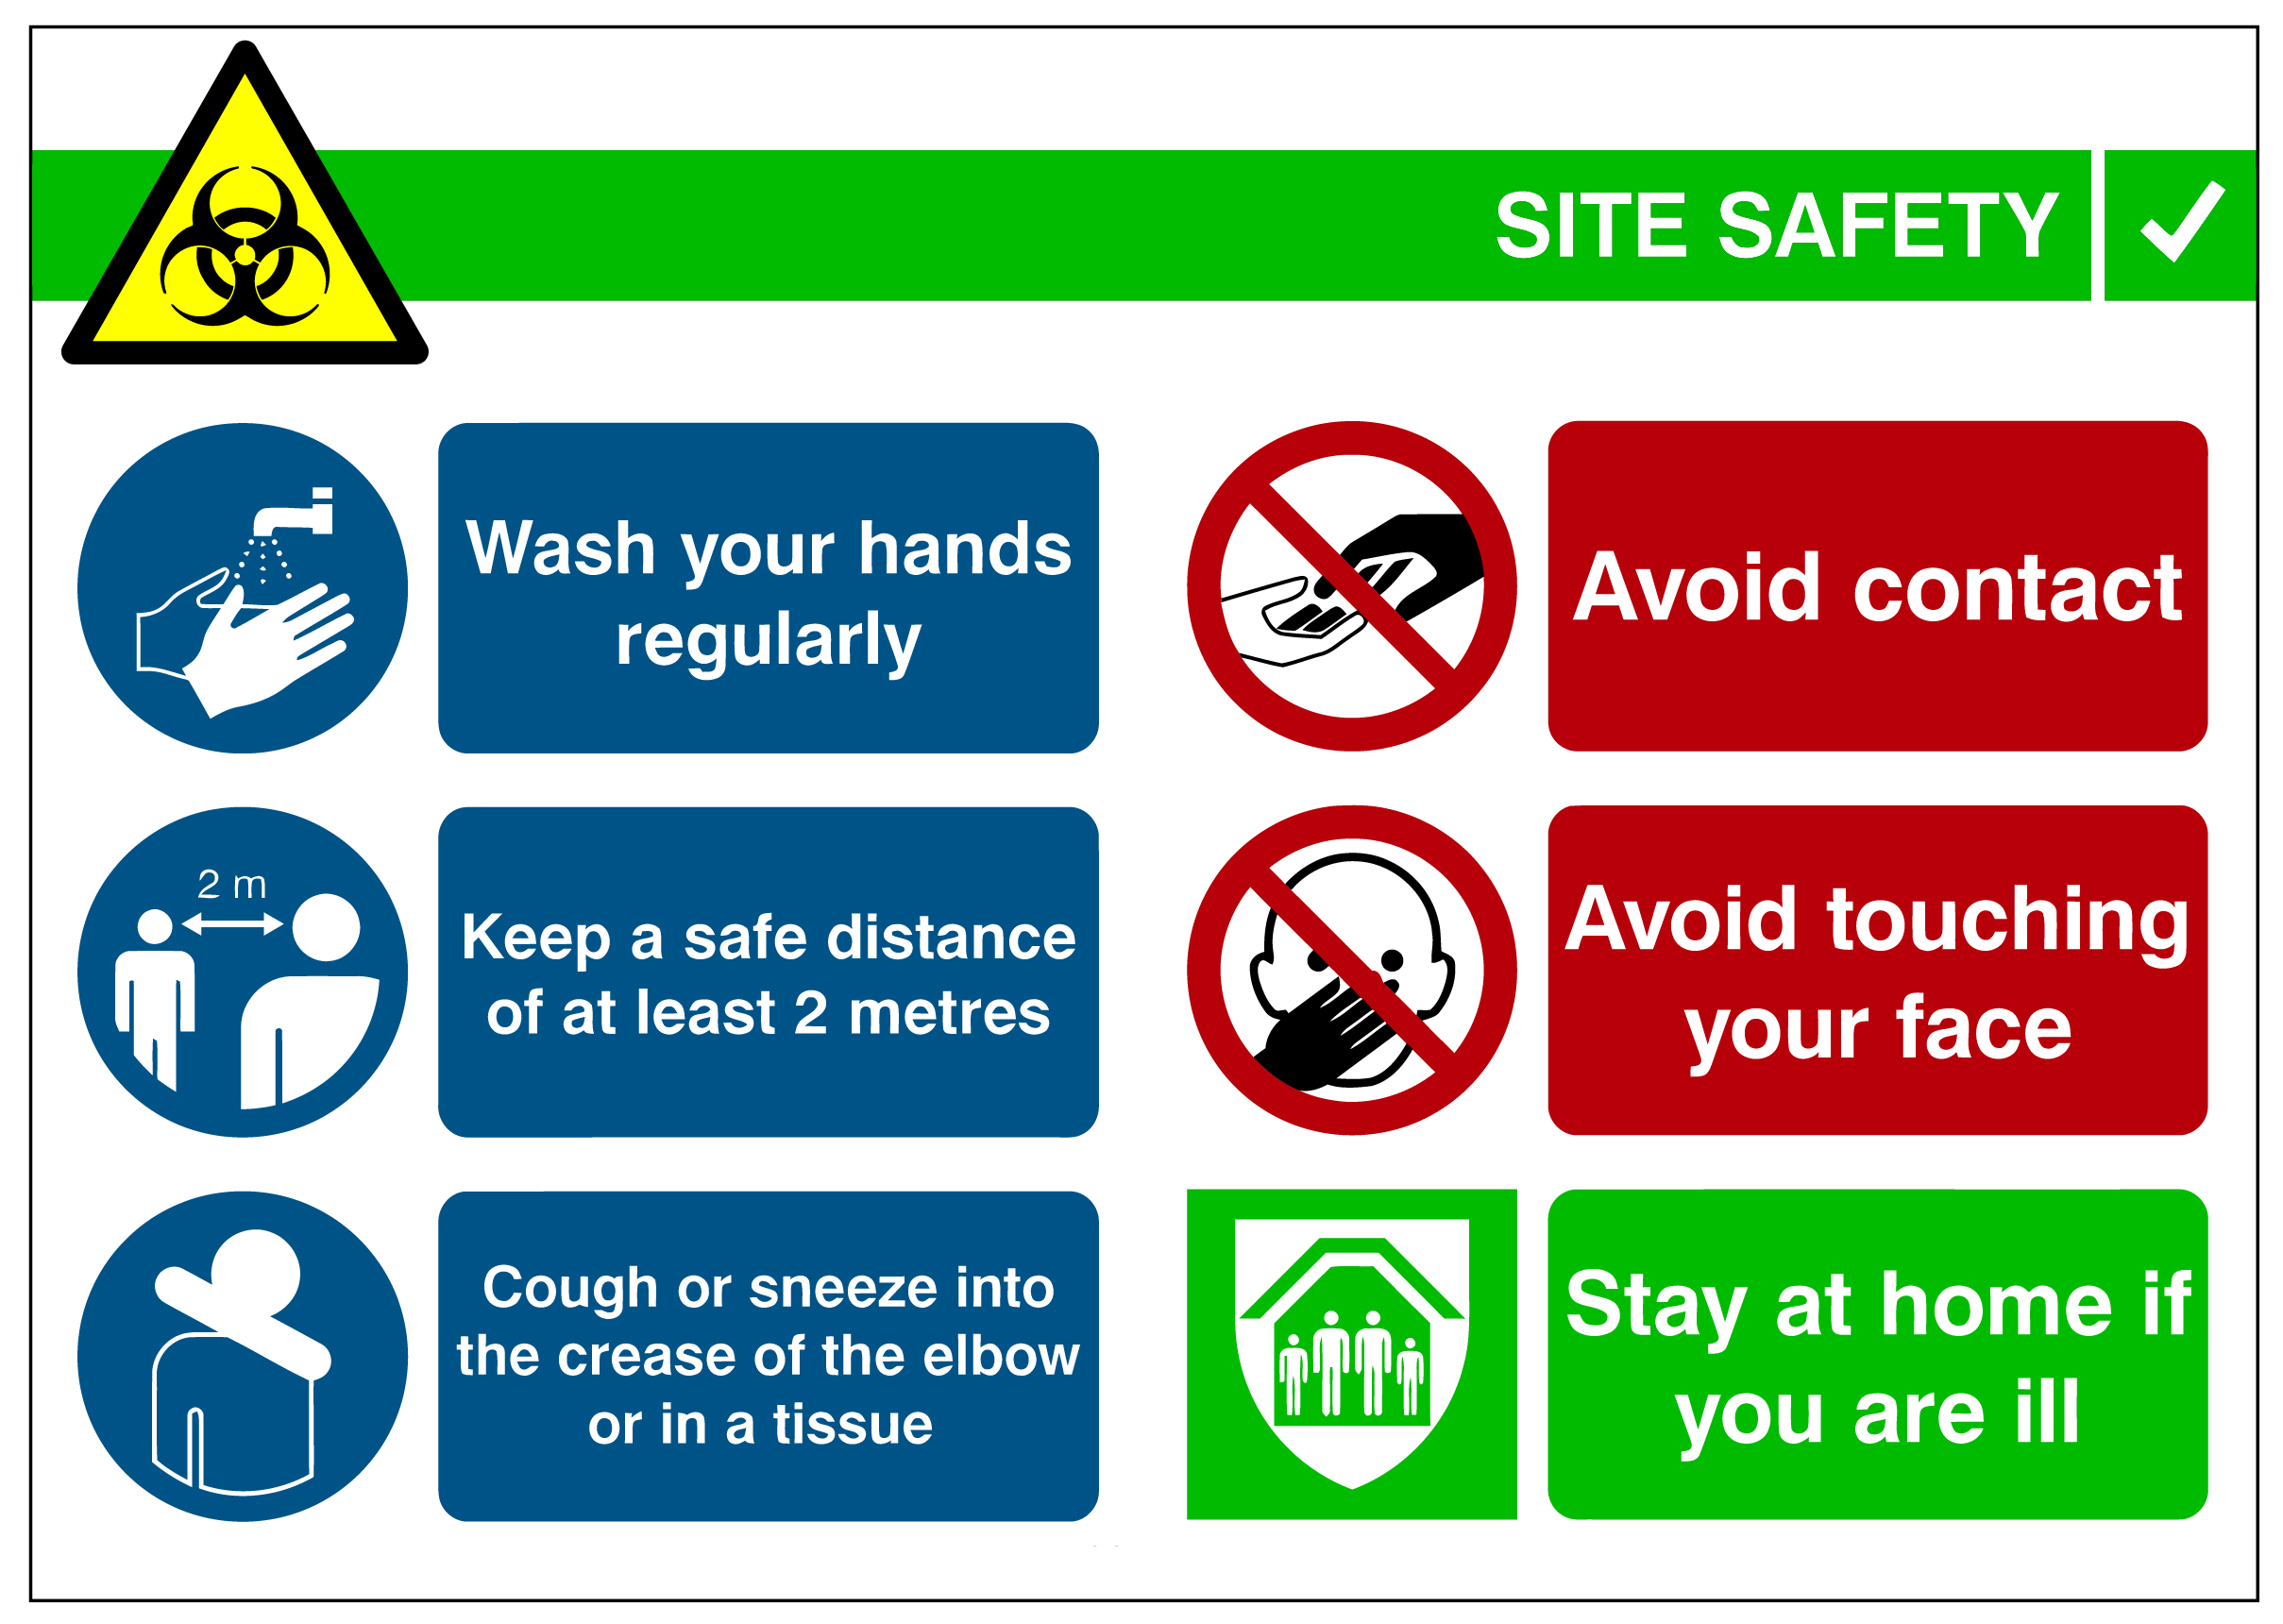 SS-A3 SITE SAFETY SIGN A3 - RIGID